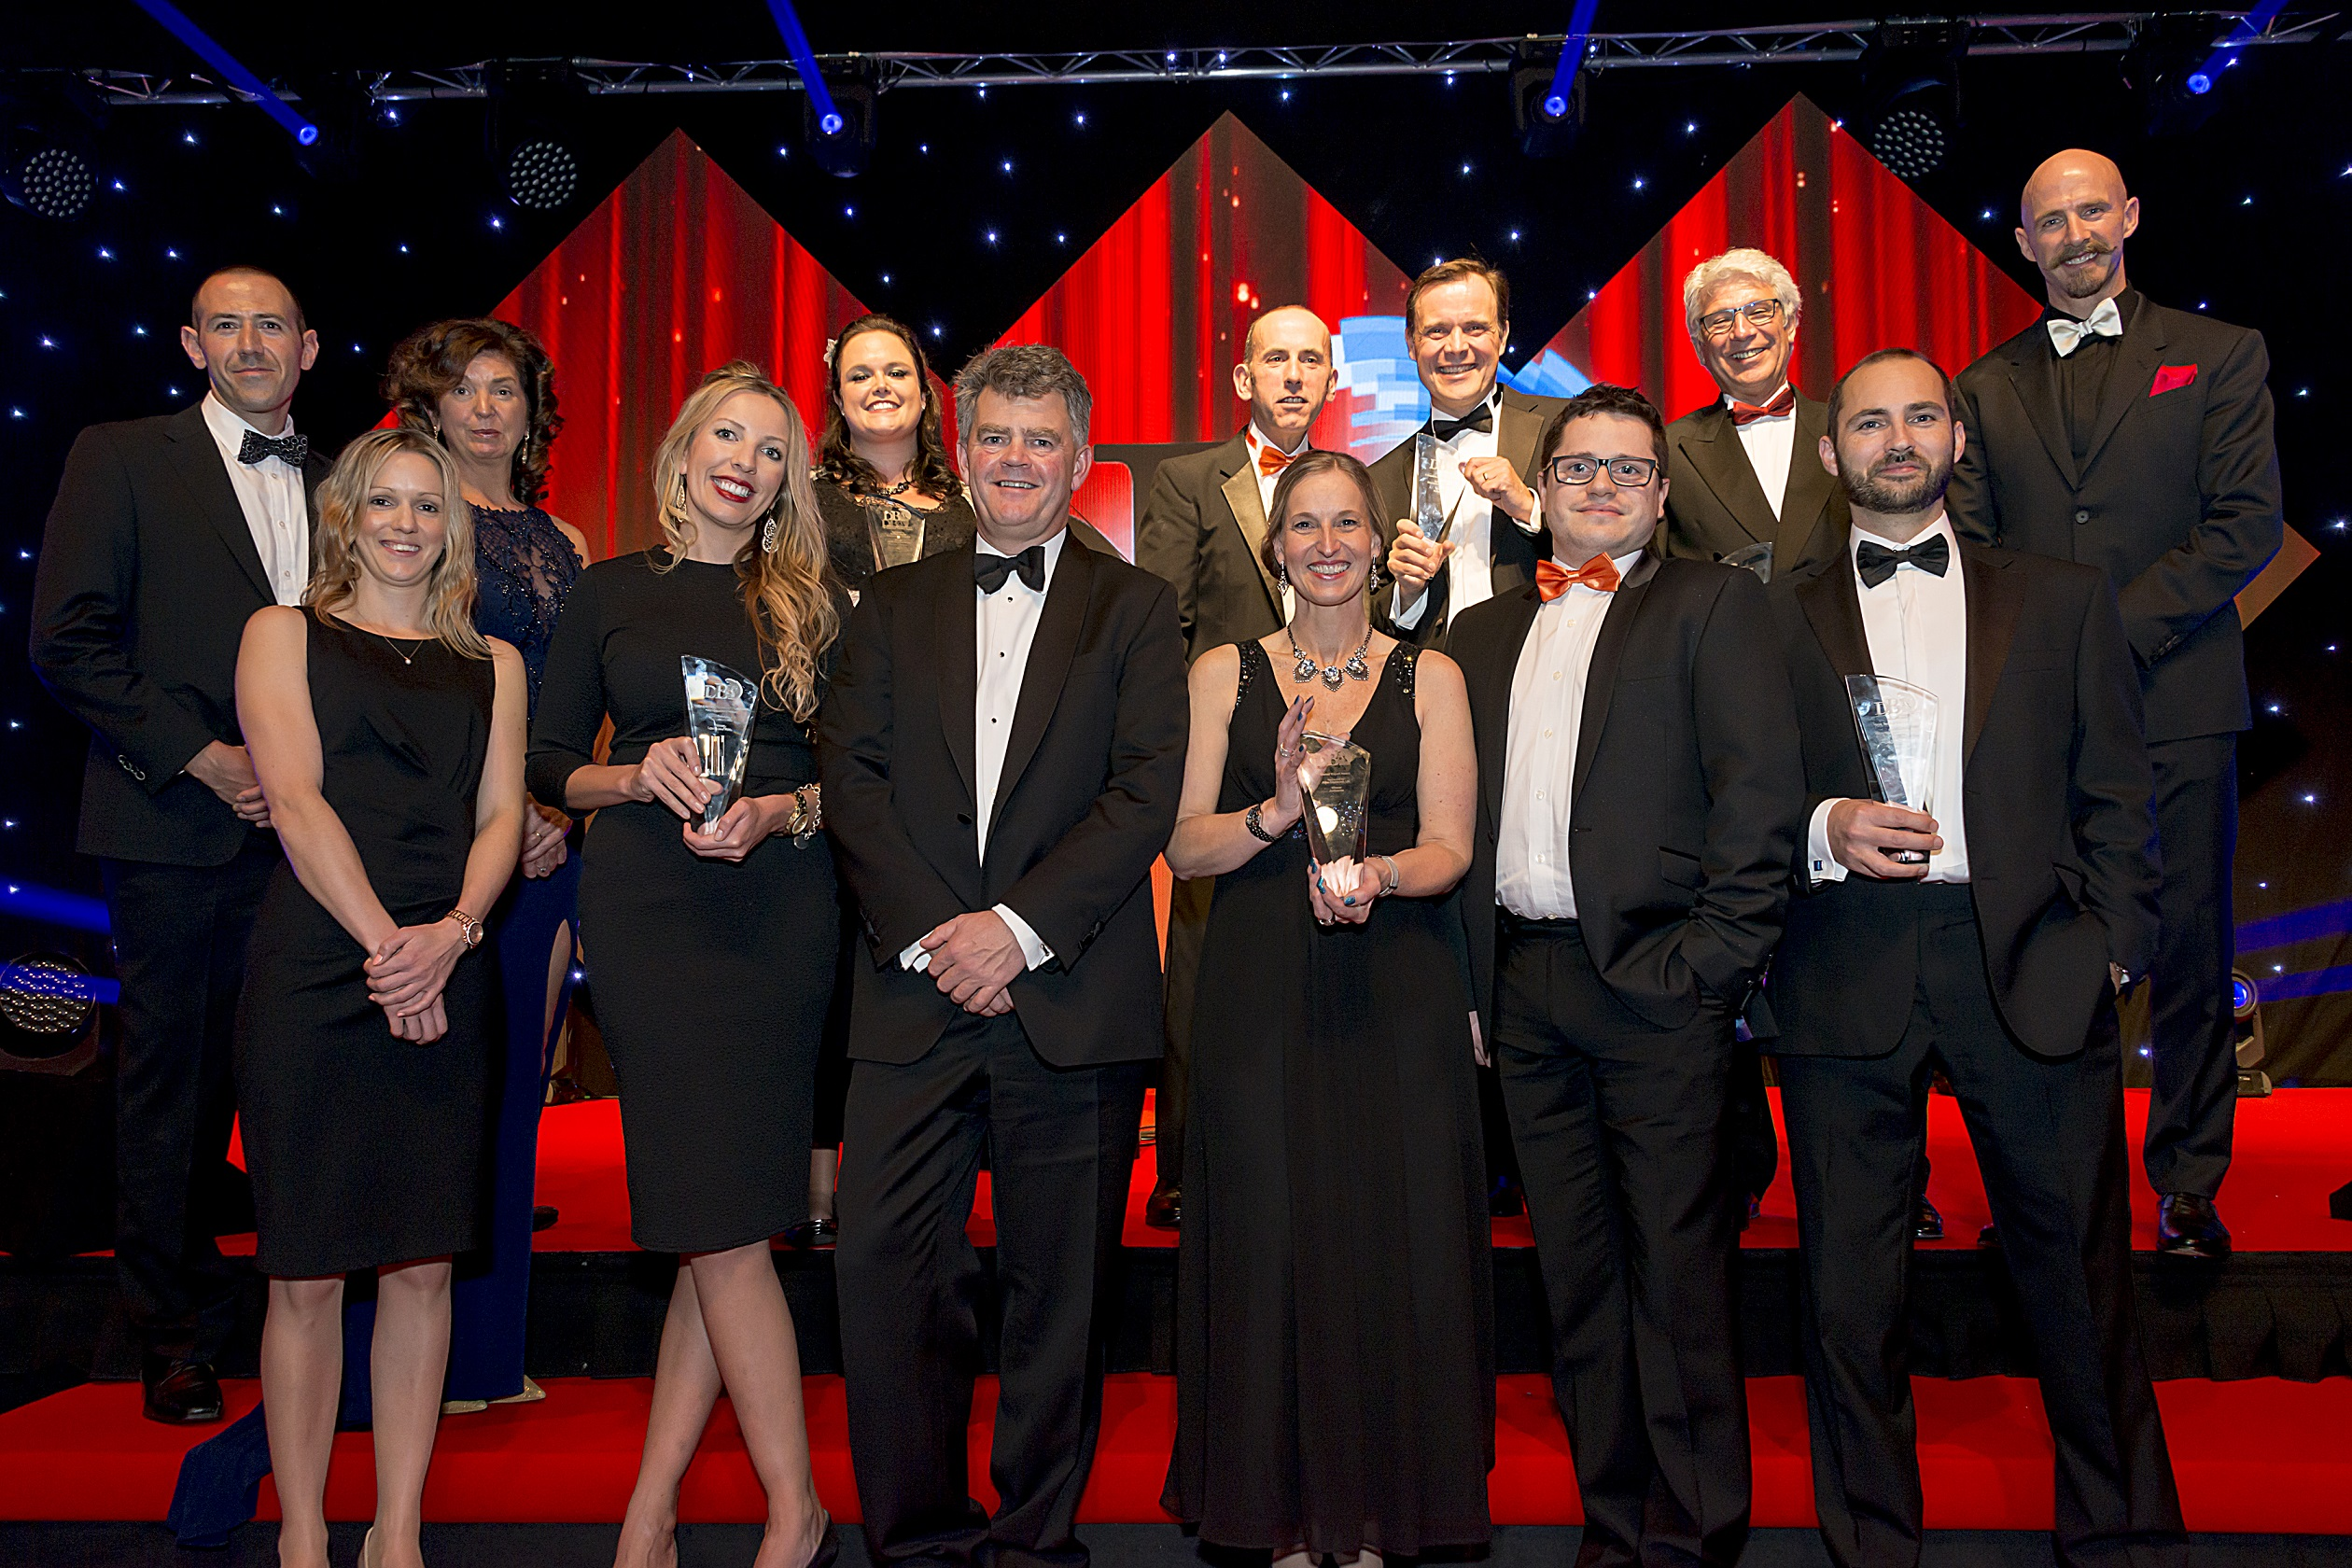 The Winners of the Dorset Business Awards 2015